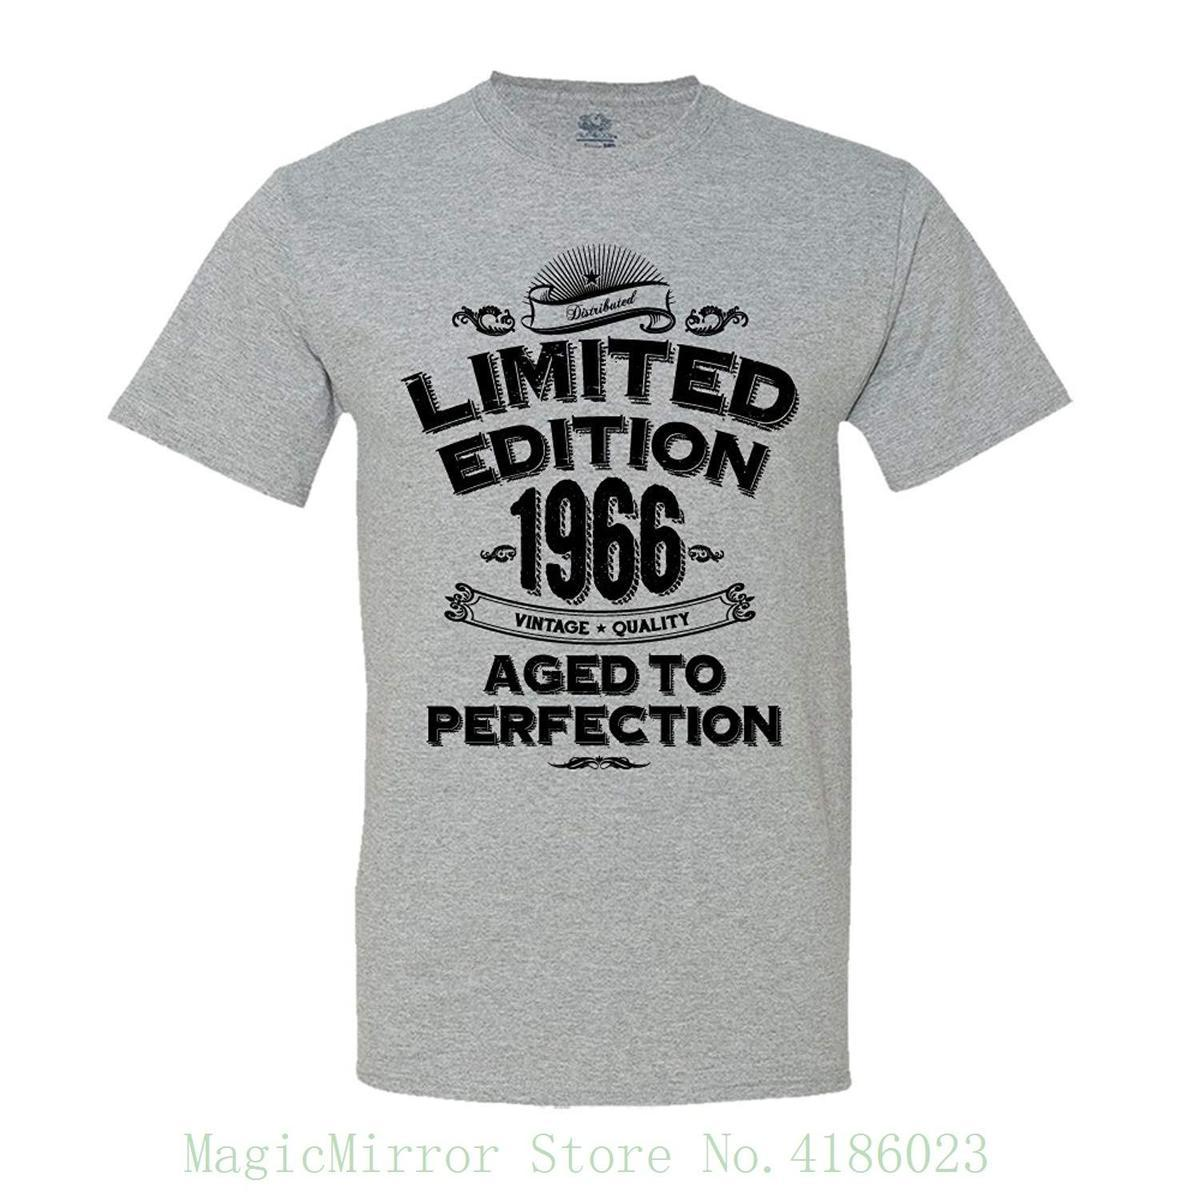 3f2e113e0 1966 Limited Edition 51st Birthday T Shirt Vintage Aged To Perfection T  Shirt Funny Print Tops Men T Shirt Shop Design Crazy T Shirts Online From  Jie68, ...